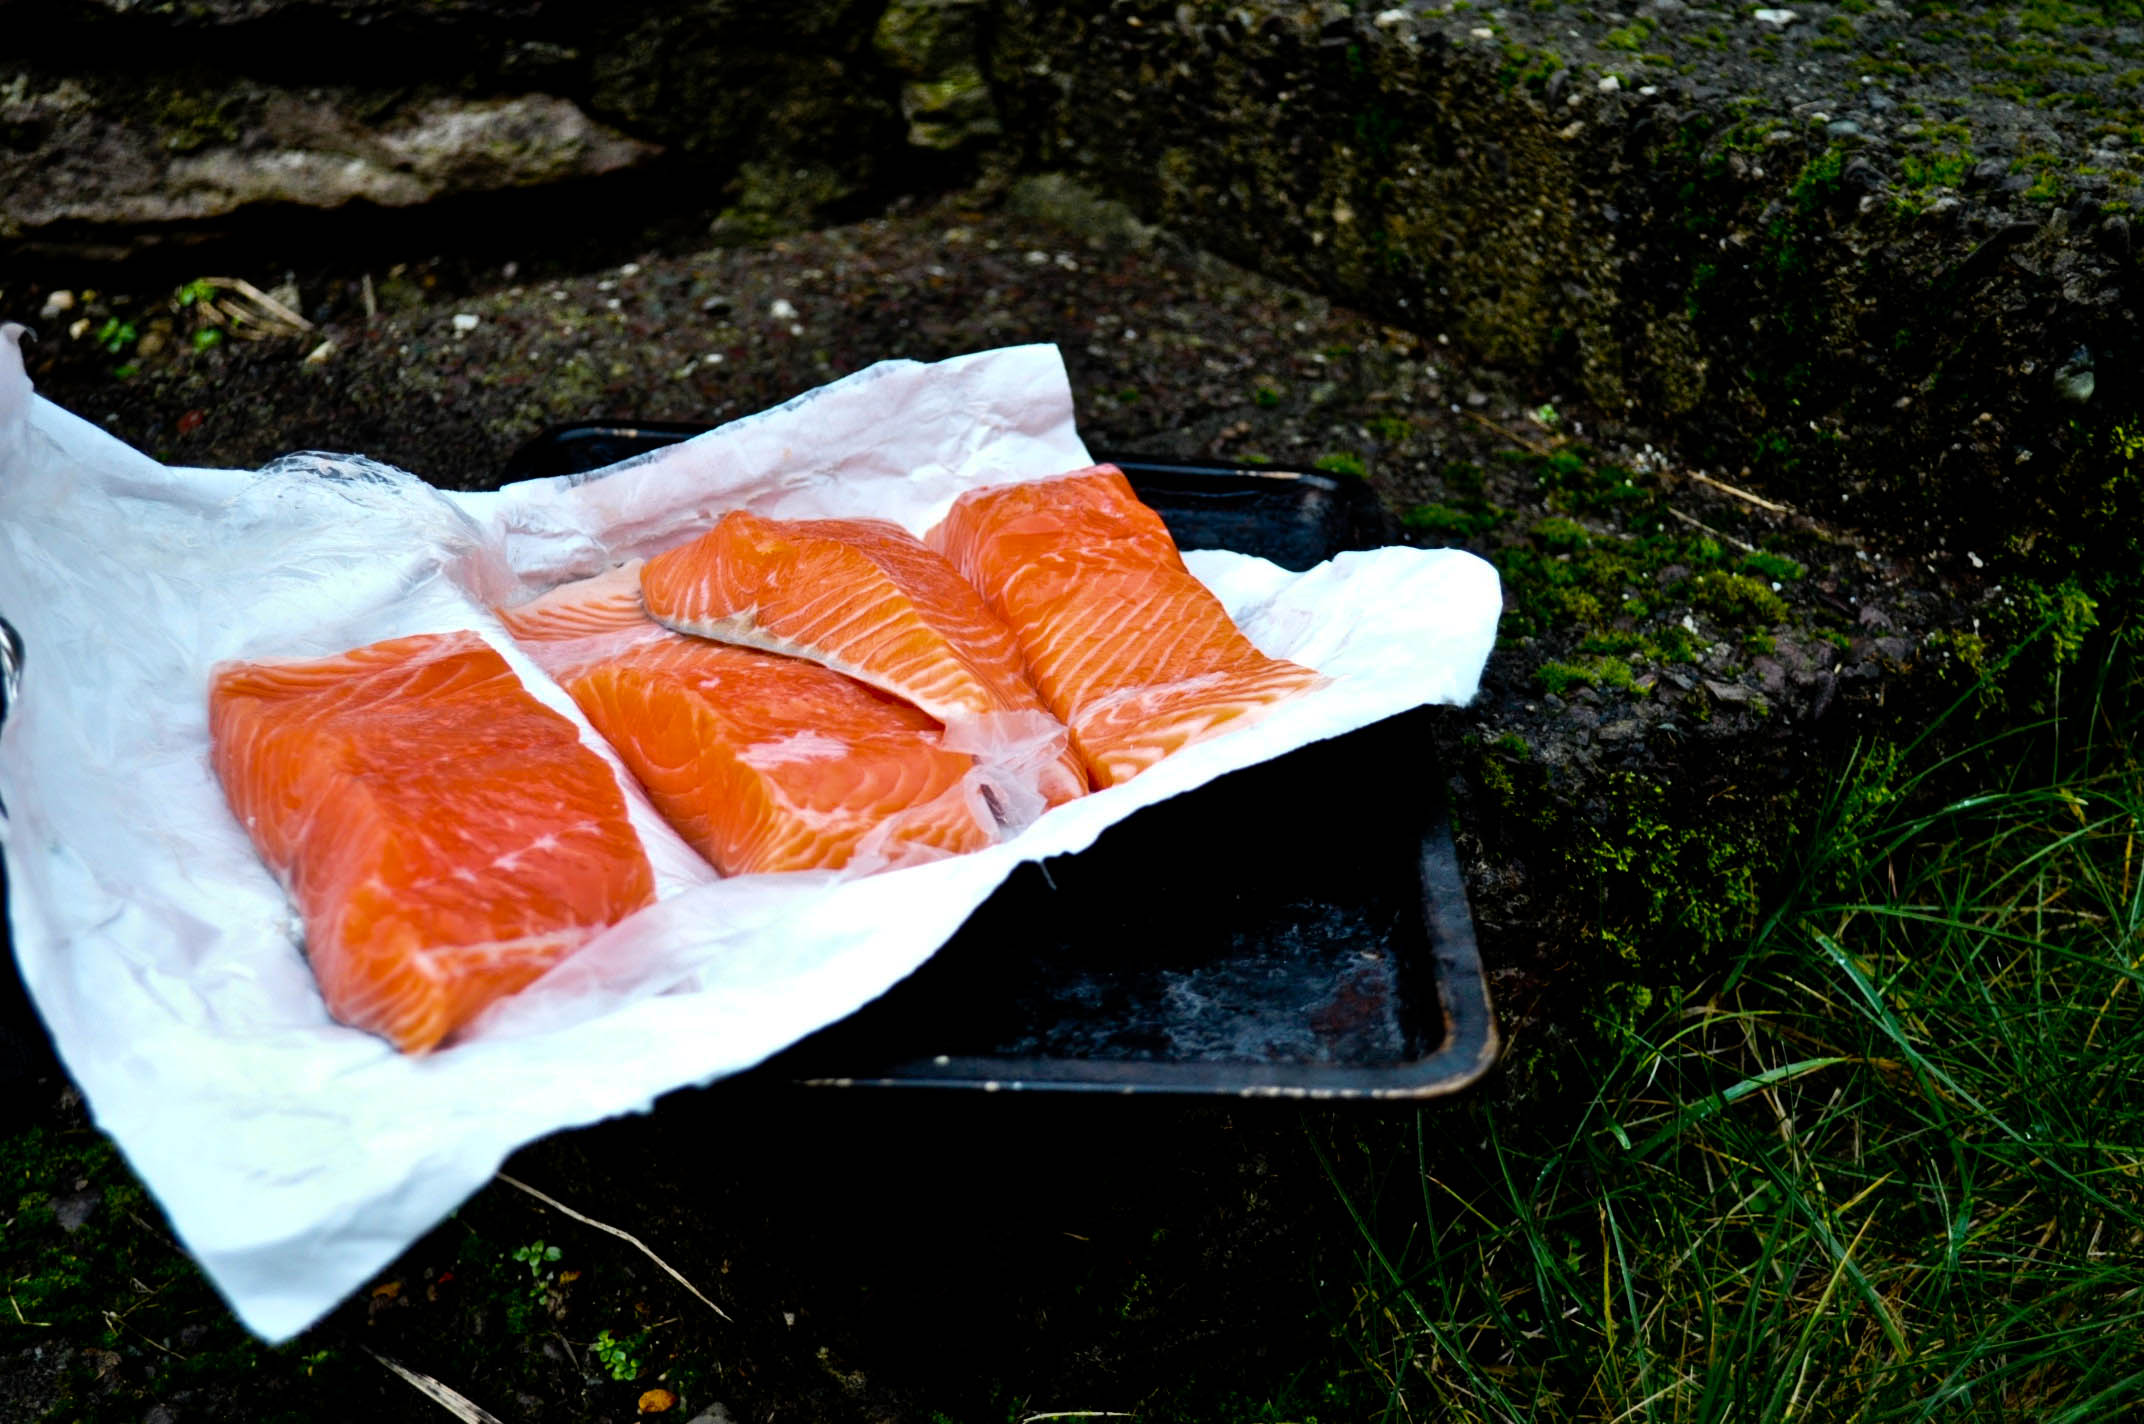 Salmon - a local fish in Ireland is cheap even wild caught. Eating what is easily grown in your area, keeps budgets in line and principles aligned.